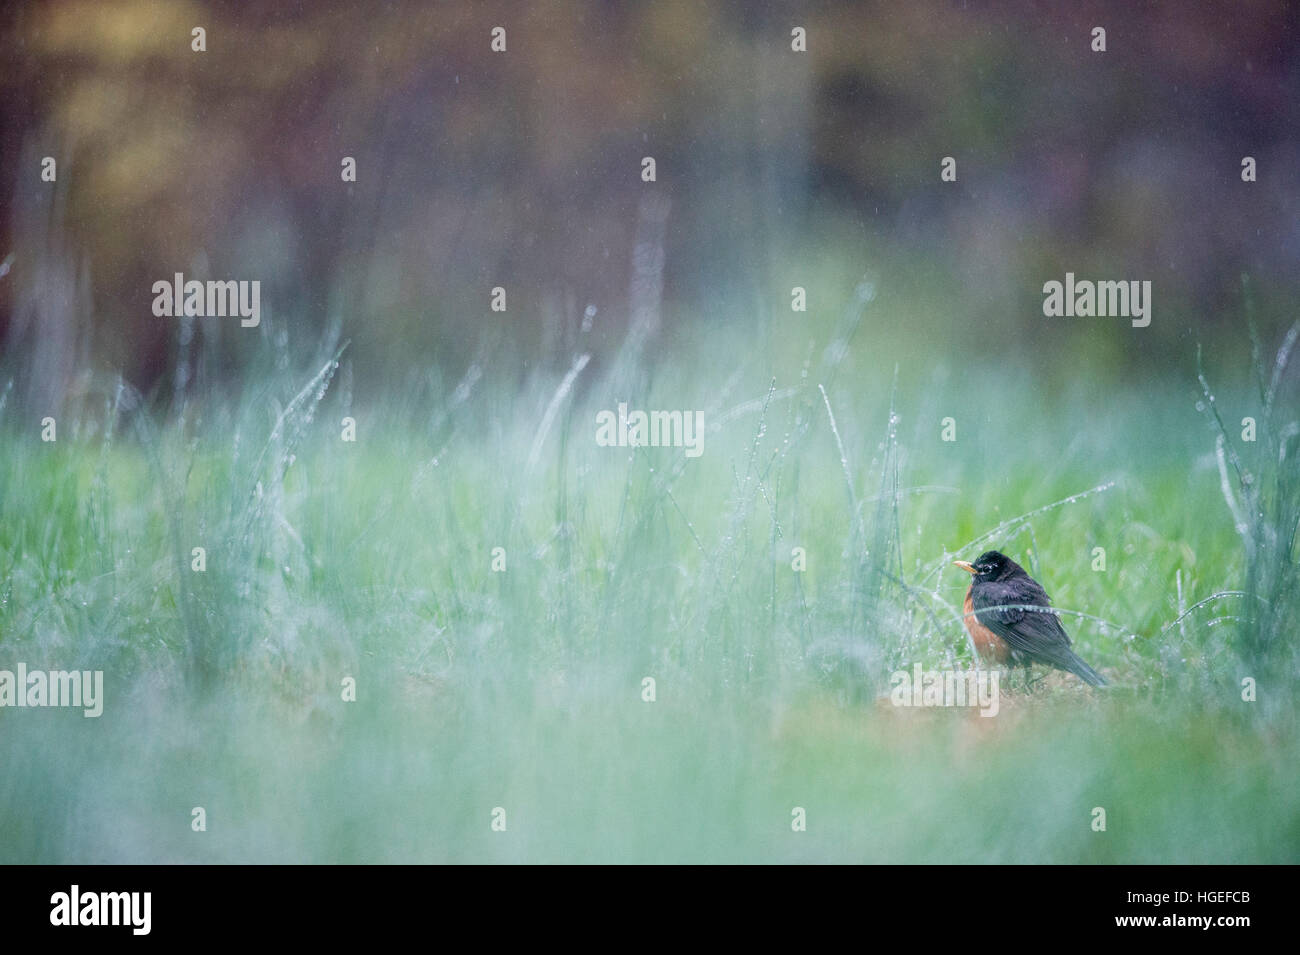 An American Robin stands in tall grass on a very rainy day. - Stock Image